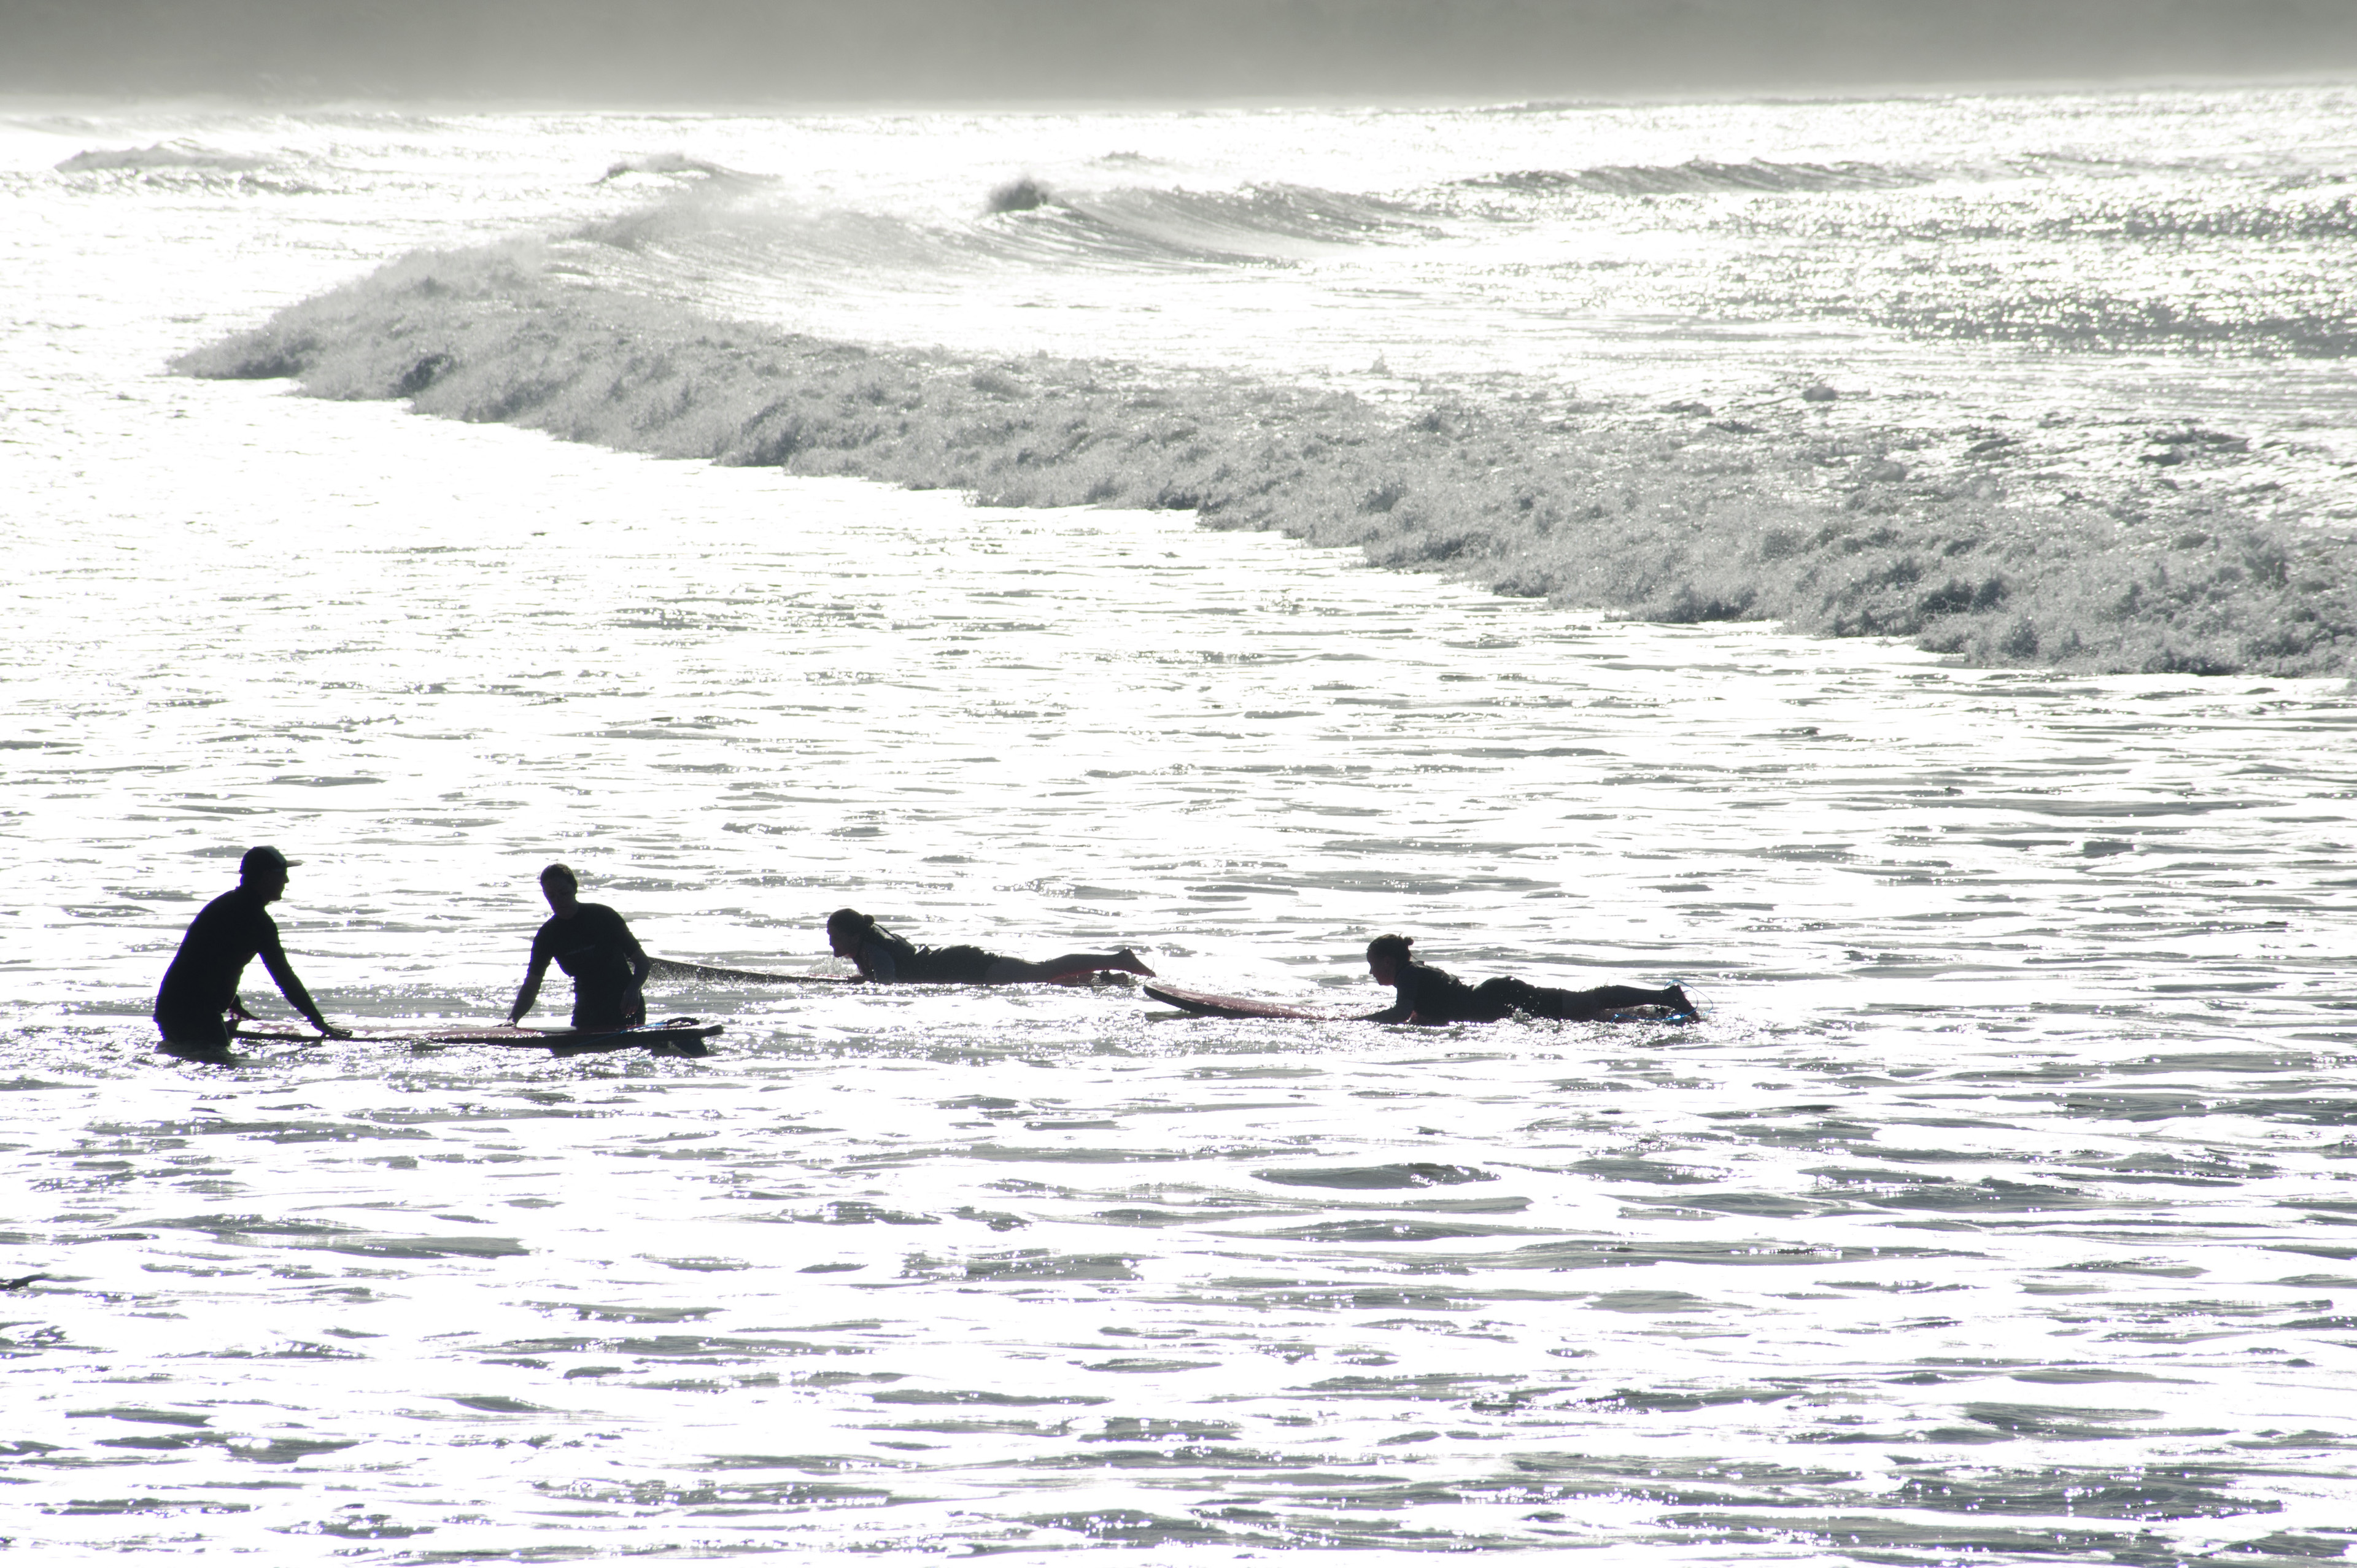 Silhouettes of surfers on their surfboards waiting for a wave on sunlit water with two kneeling and two lying flat on their boards